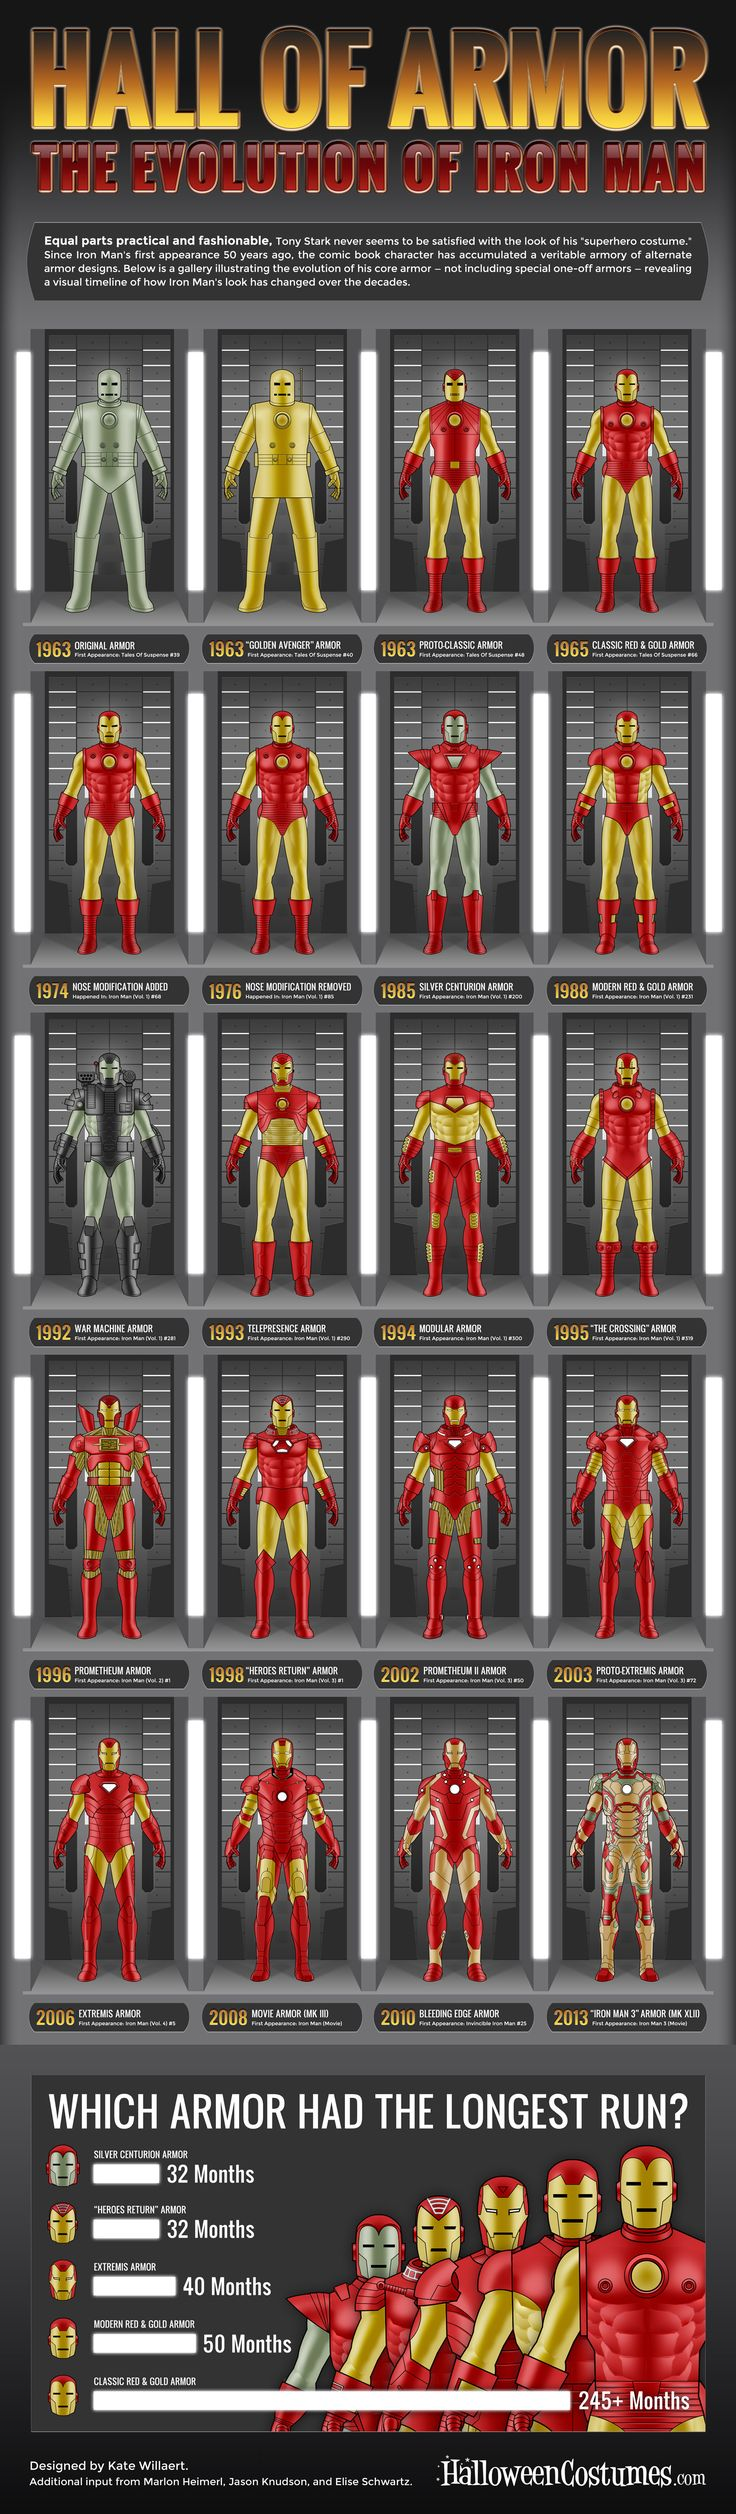 Hall of Armor: La evolución de Iron Man